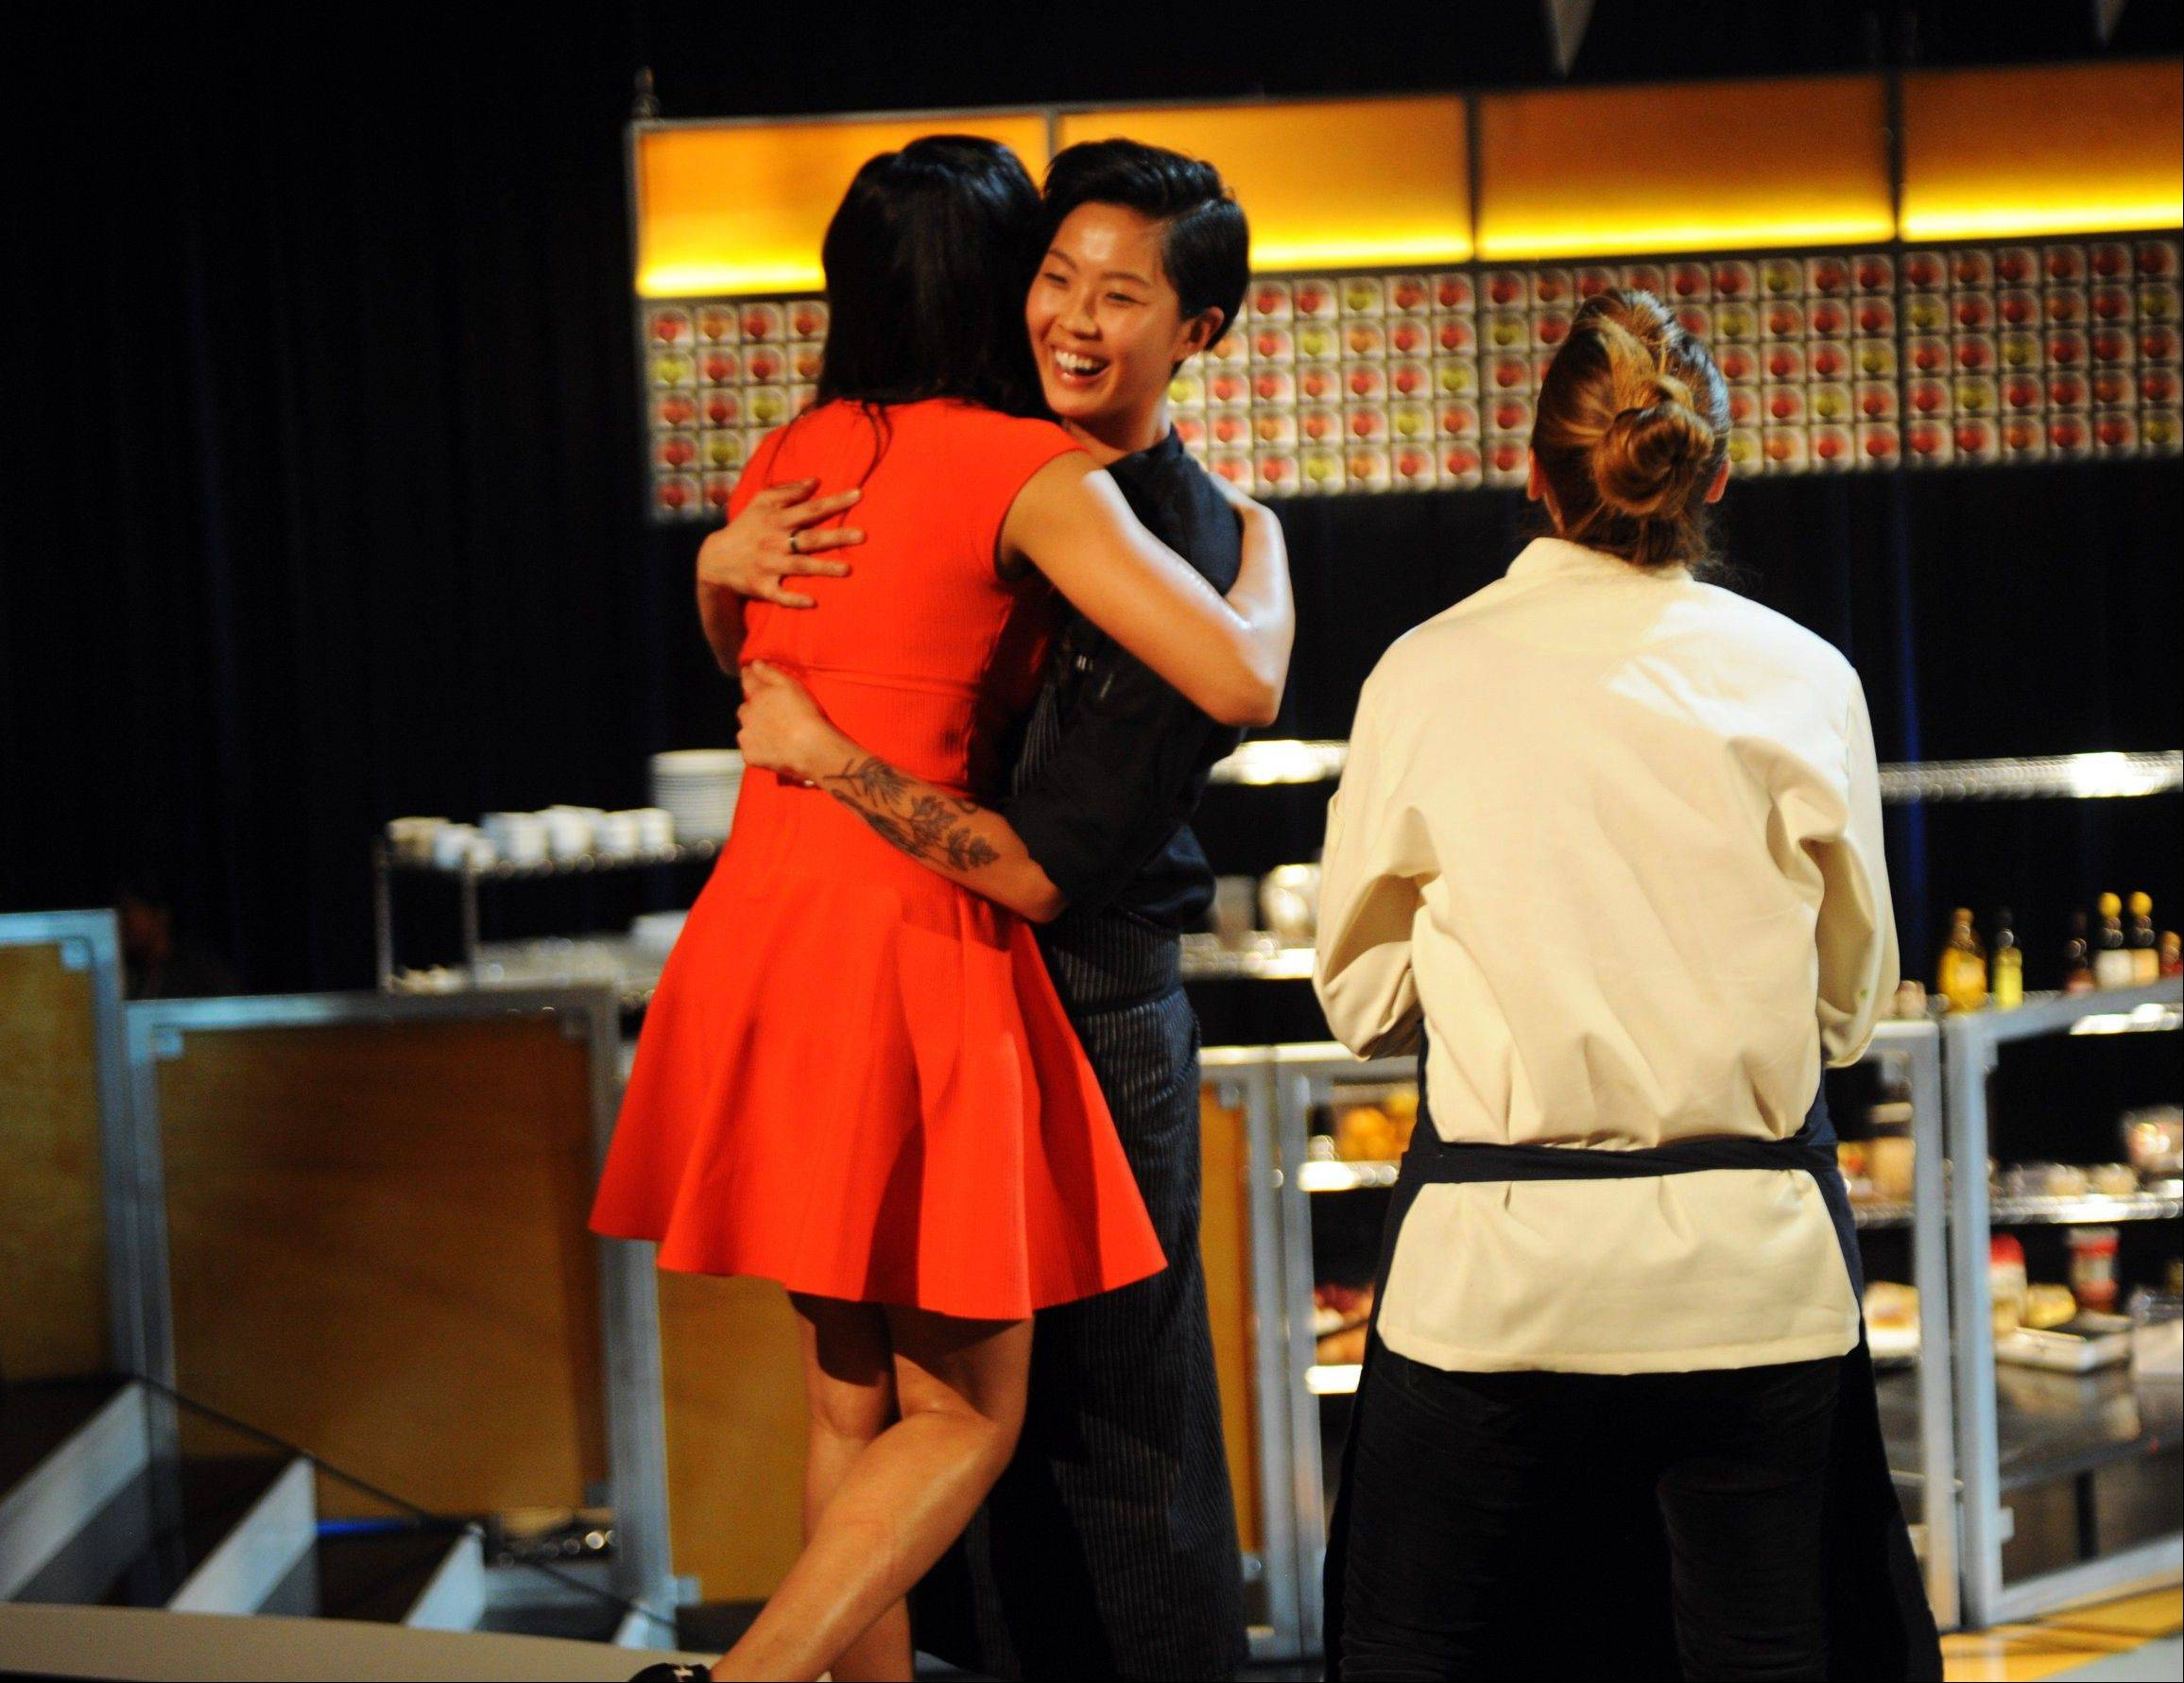 Judge Padma Lakshmi, left, embraces �Top Chef: Seattle� winner Kristen Kish, center, while contestant Brooke Williamson looks on during the show�s finale that aired Wednesday.